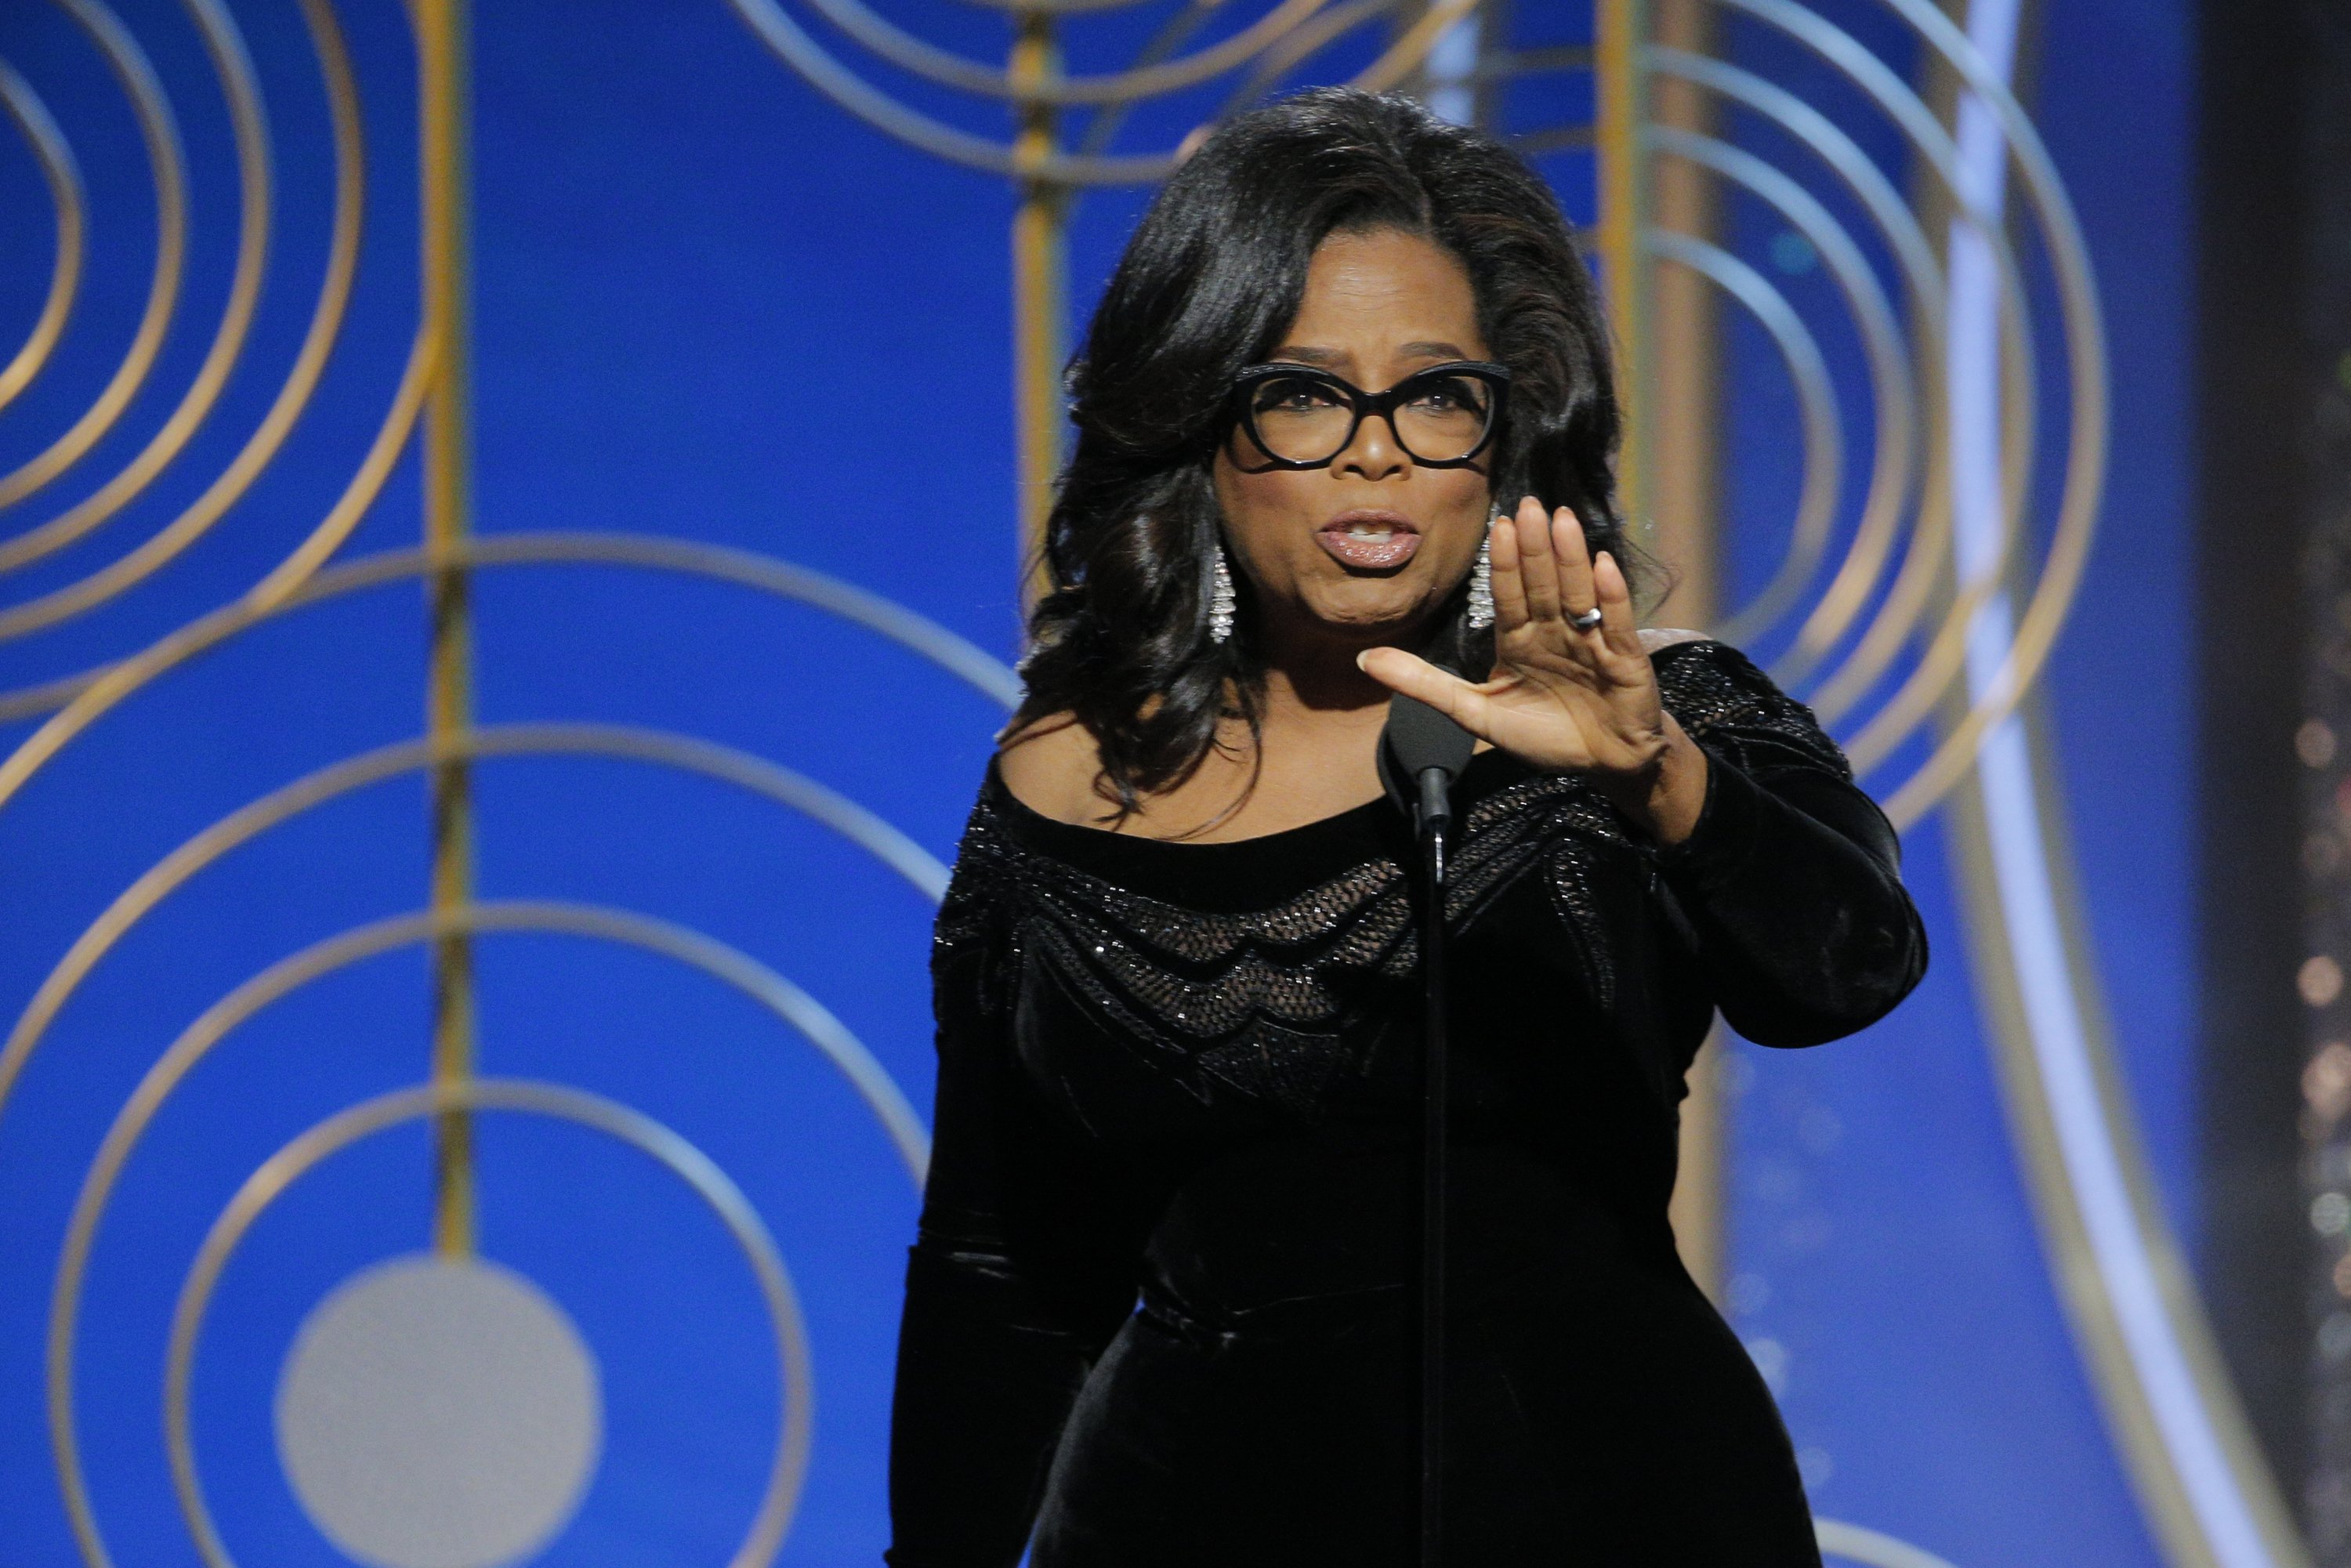 Oprah Winfrey Image Source: Getty Images.